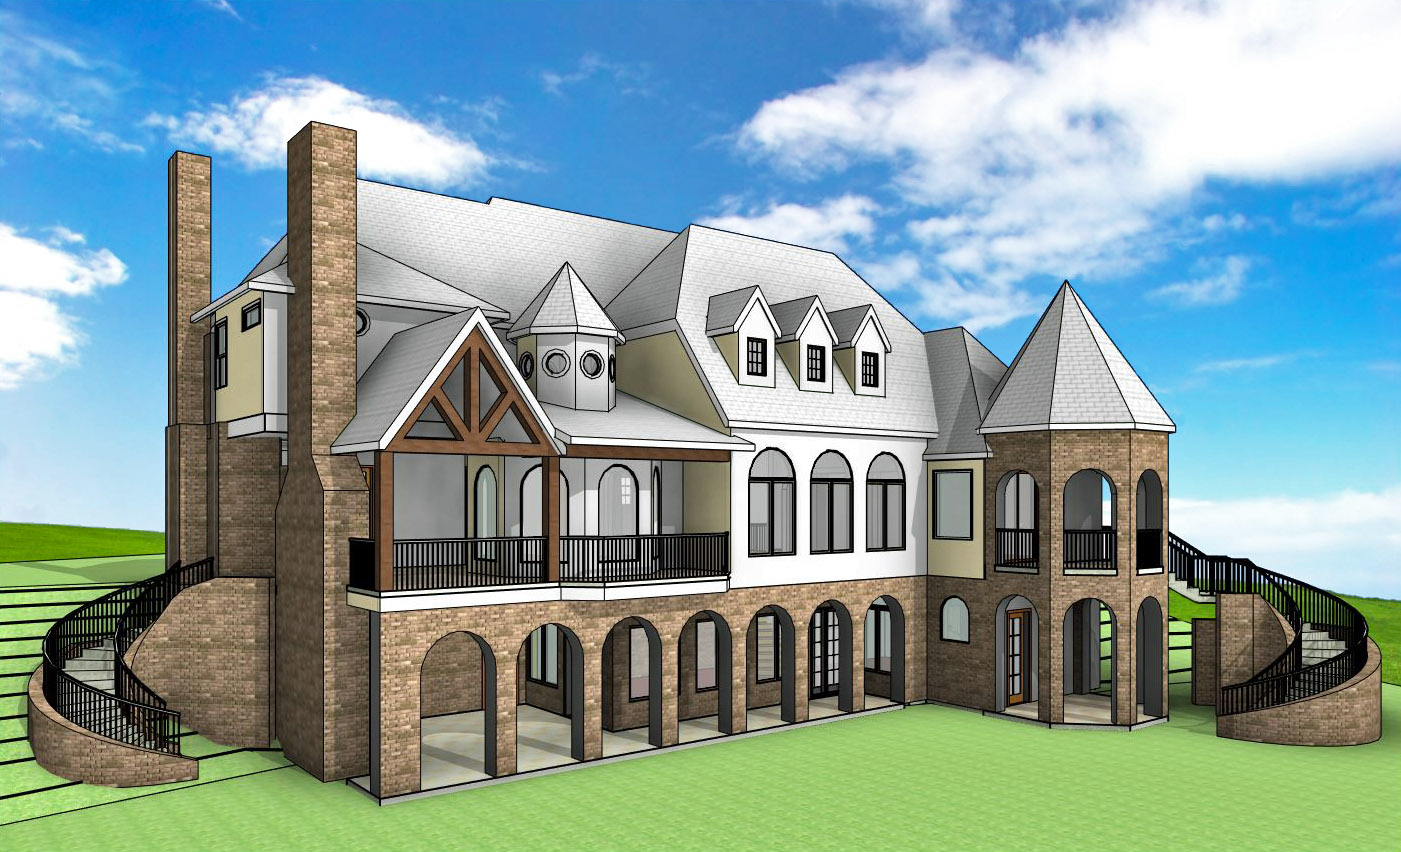 Lake house vantage building consulting design for 3d view of house